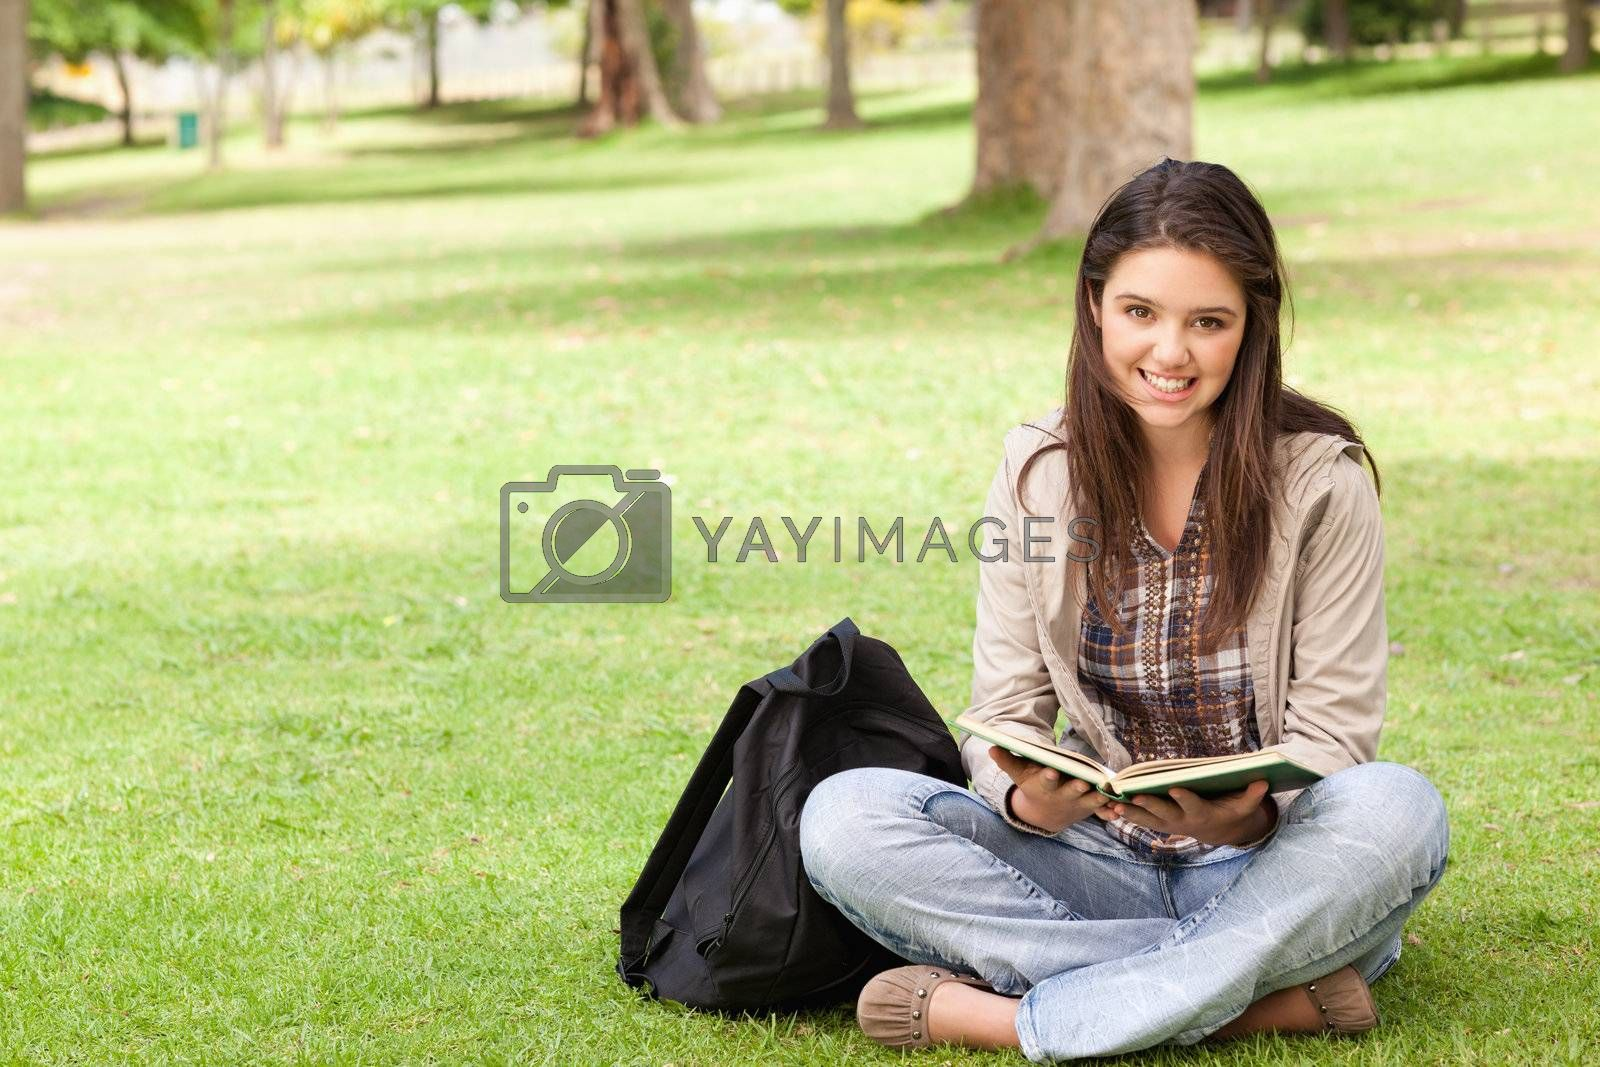 Smiling teenager sitting while holding a textbook in a park